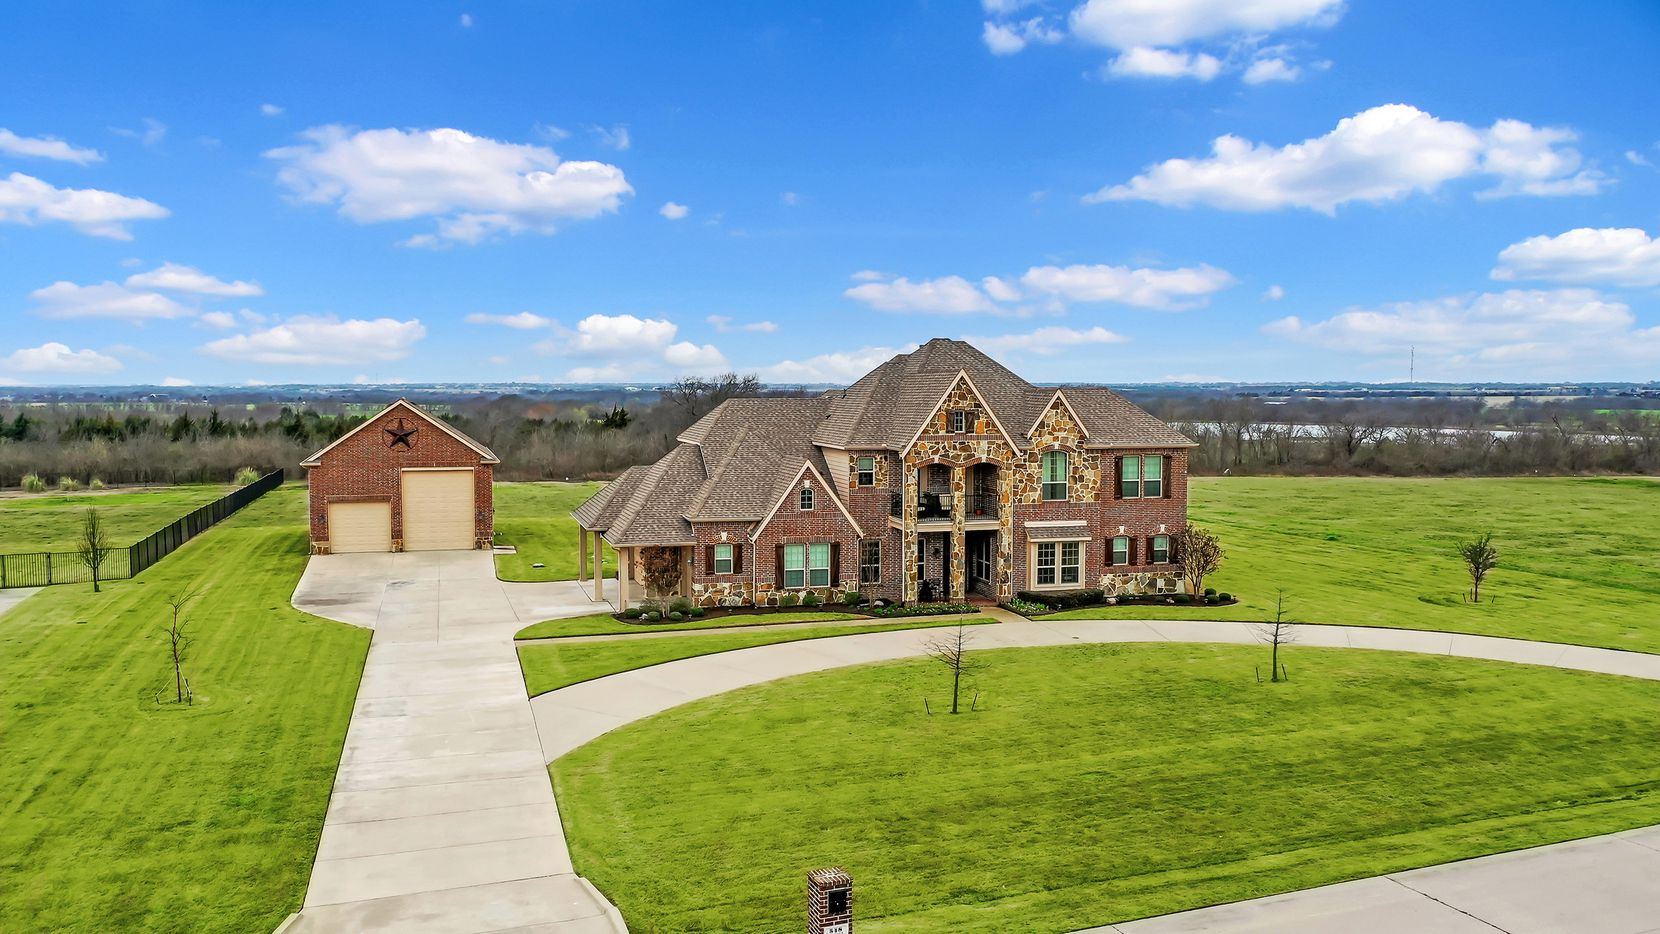 The residence at 548 Chisholm Ridge Drive in Rockwall is listed at $724,900.